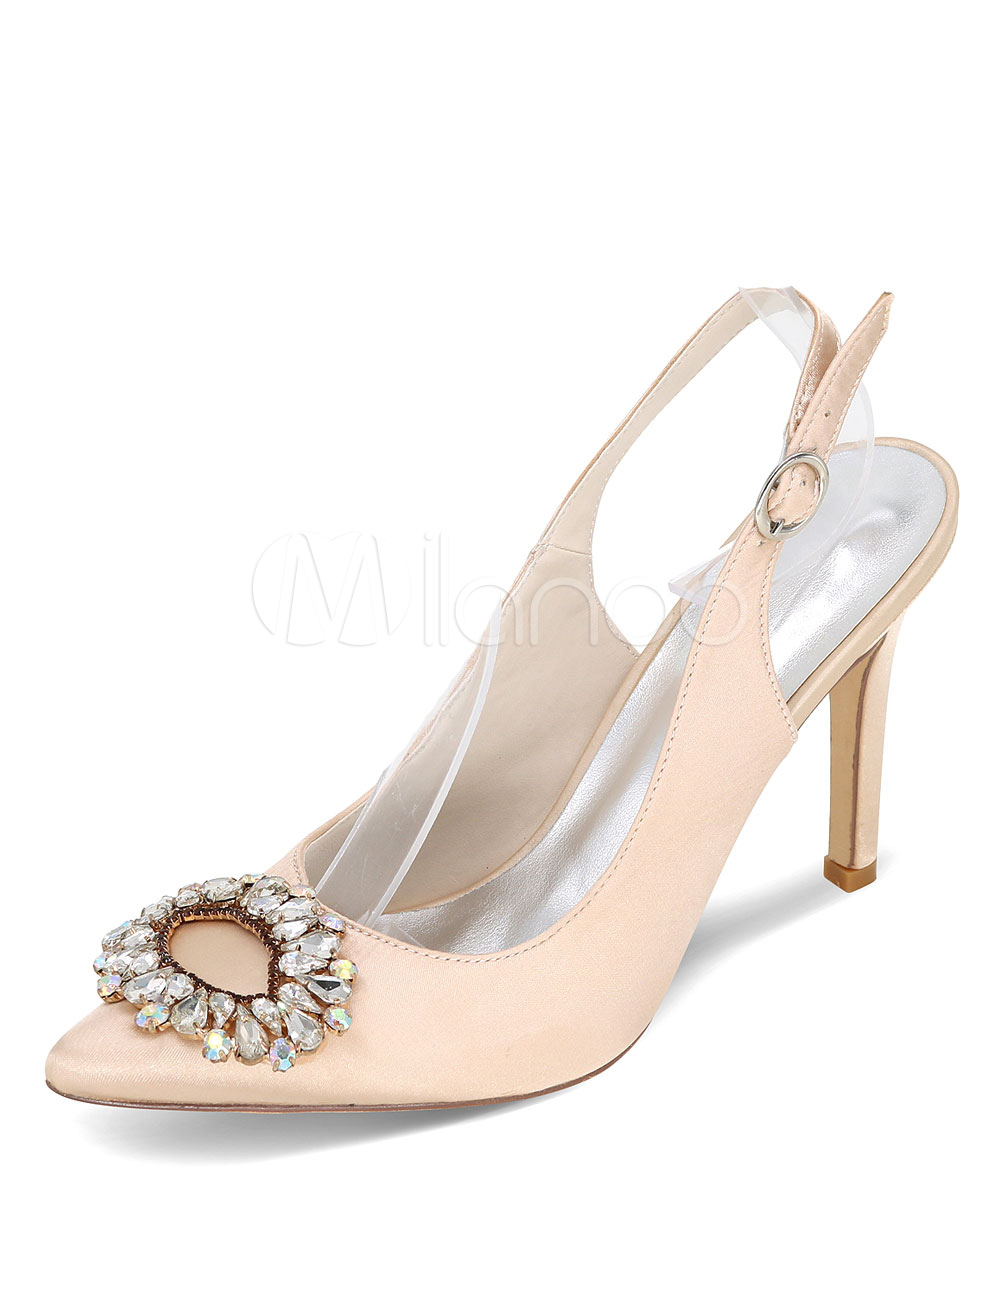 Buy White Wedding Shoes Pointed High Heel Rhinestones Satin Bridal Shoes for $47.49 in Milanoo store